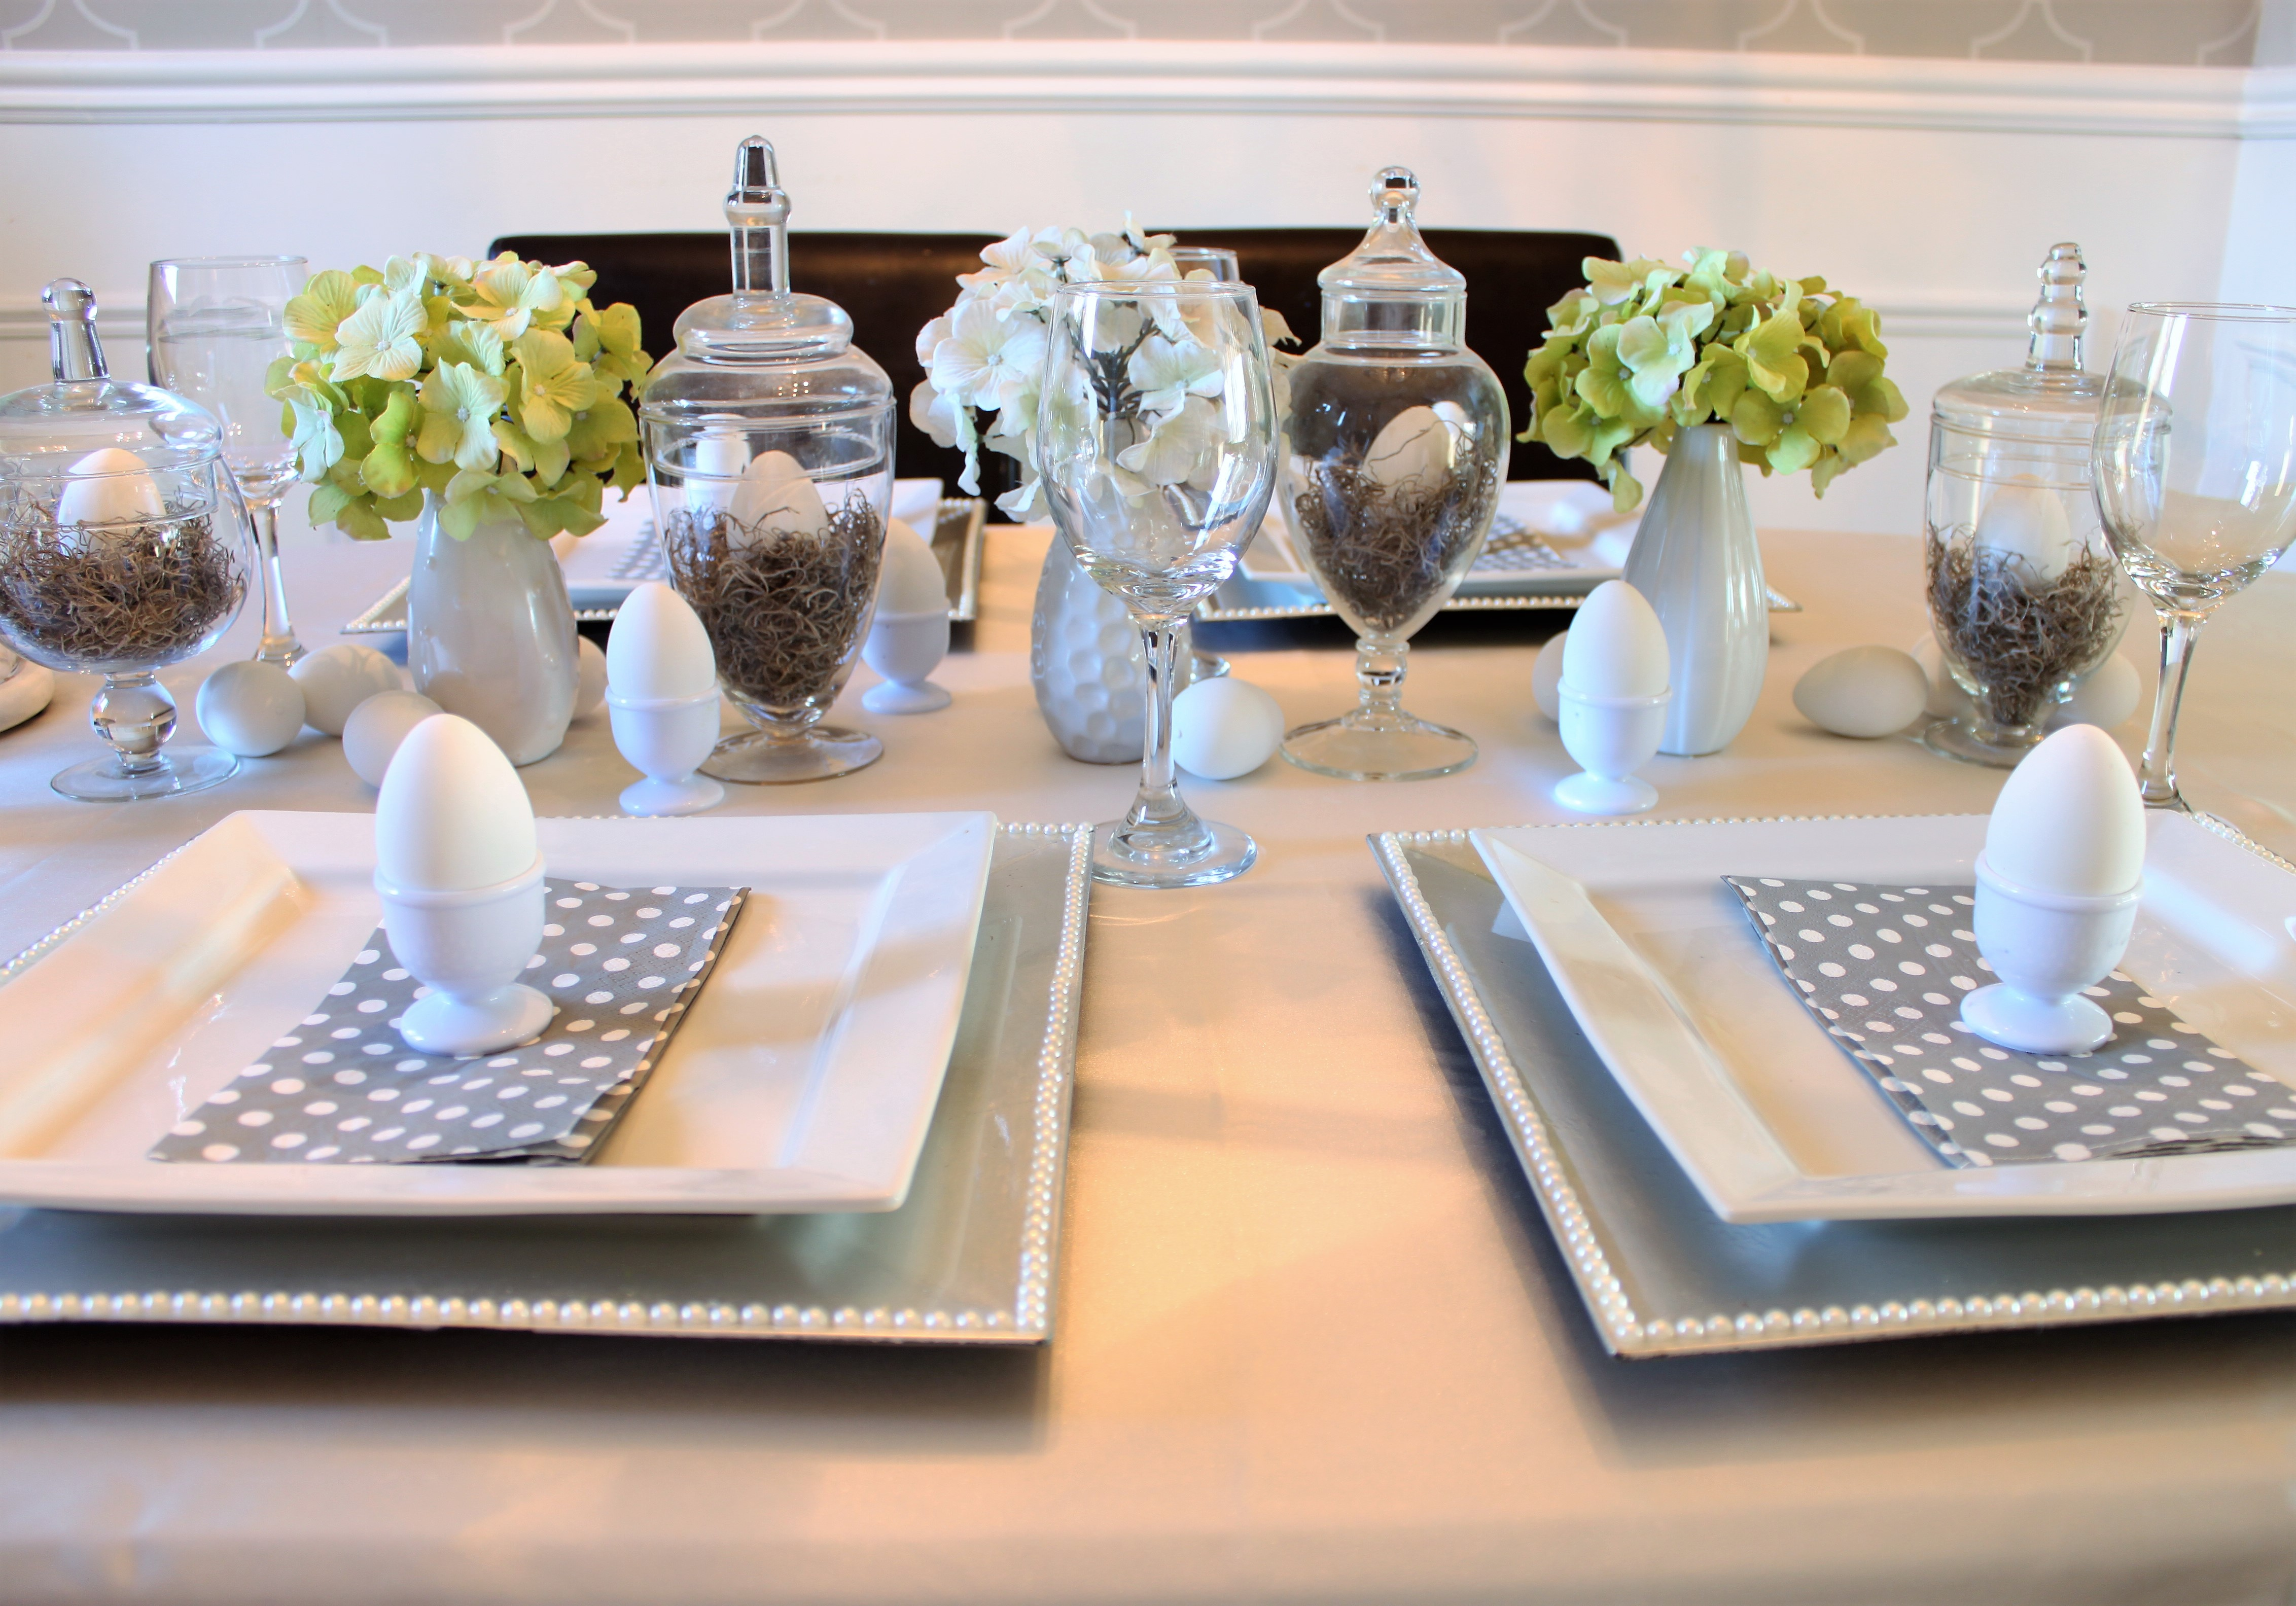 Easter Table Setting Using Thrift Store Apothecary Jars - a purdy ...